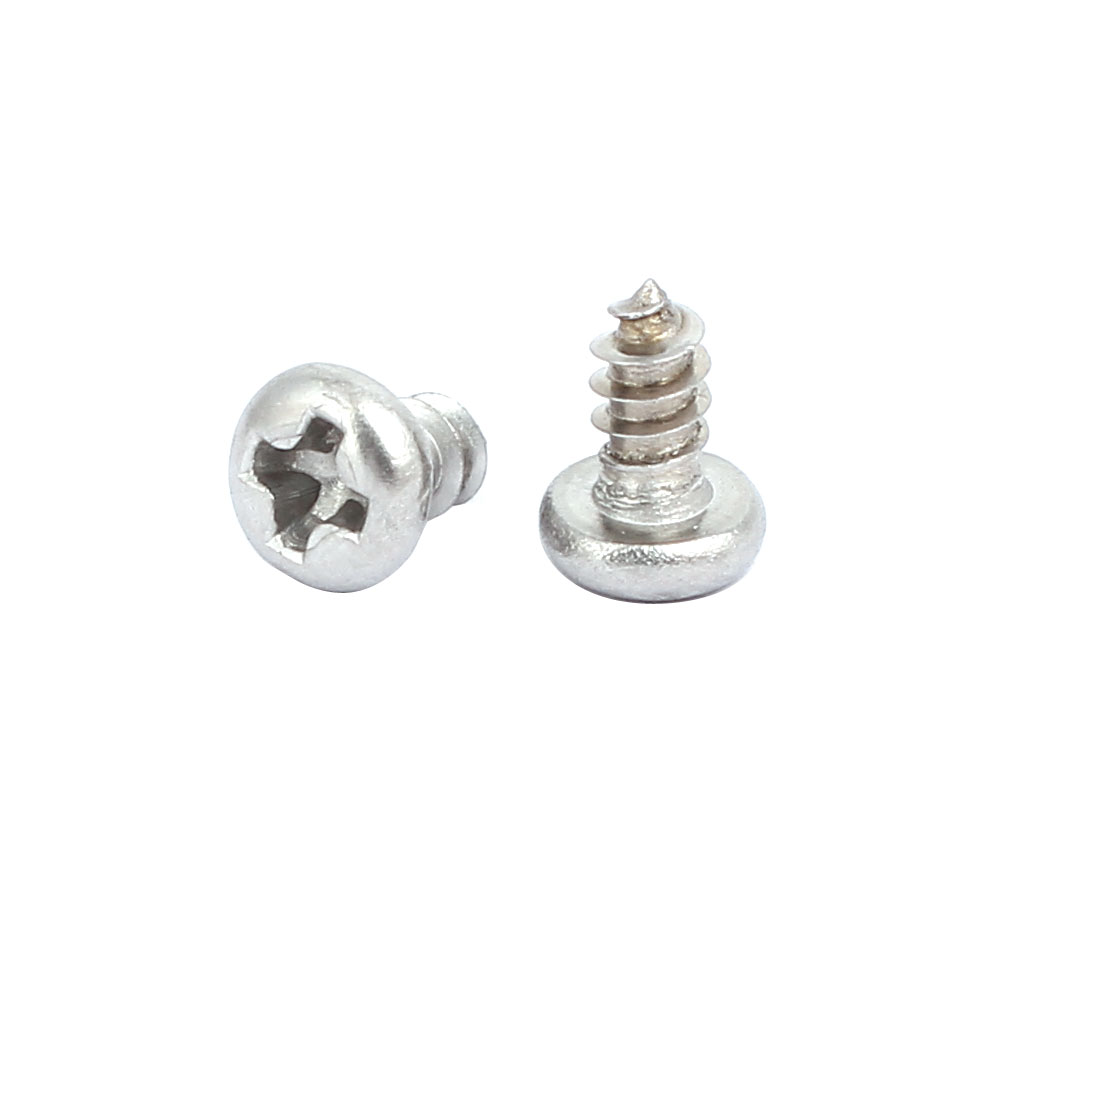 M3x6mm 304 Stainless Steel Phillips Drive Pan Head Self Tapping Screws 250pcs - image 1 de 3